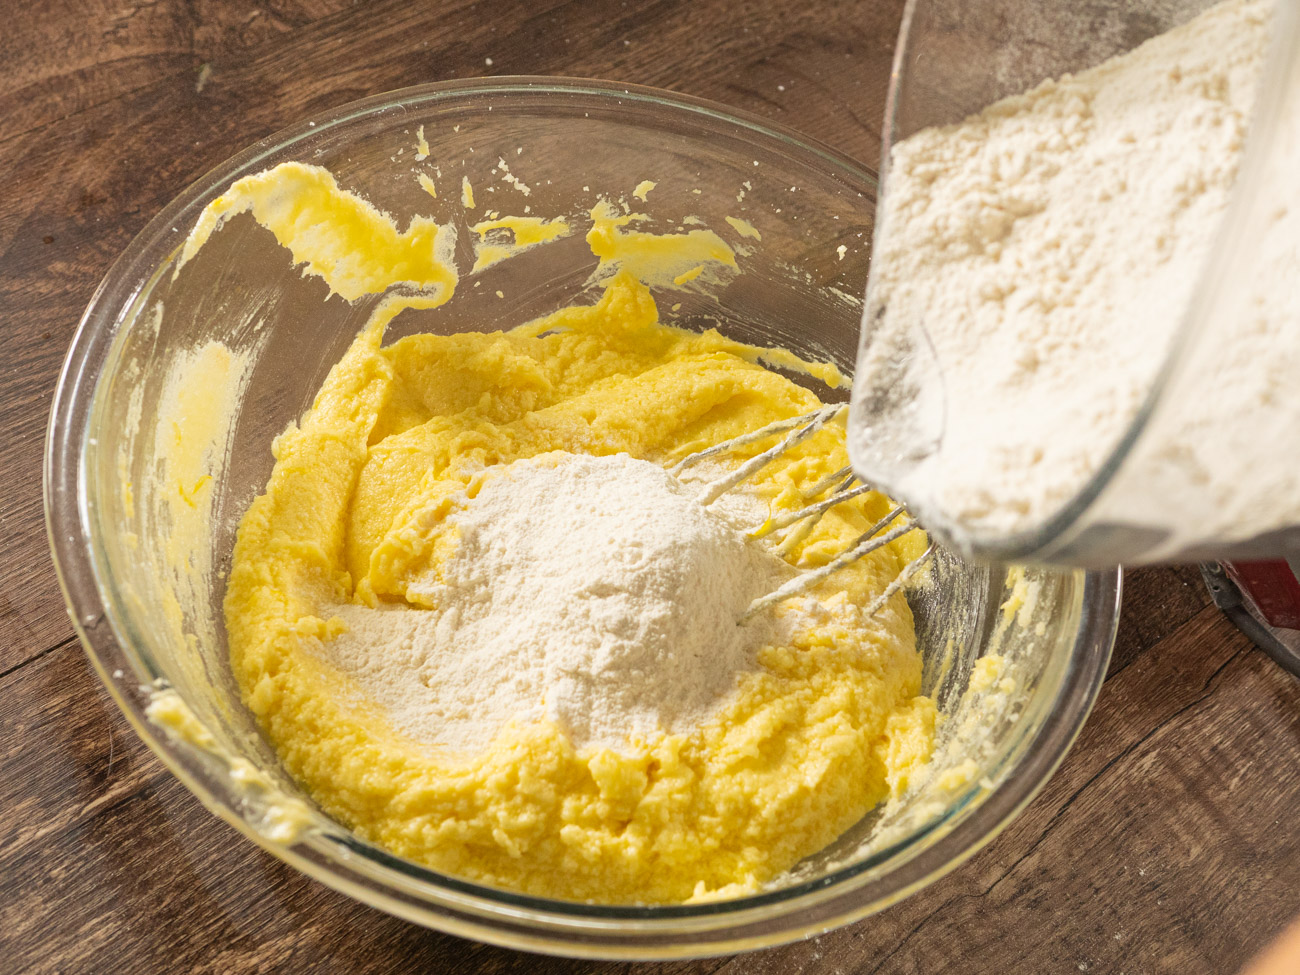 In a separate bowl combine flour and salt. Slowly add the flour mixture to the wet ingredients.